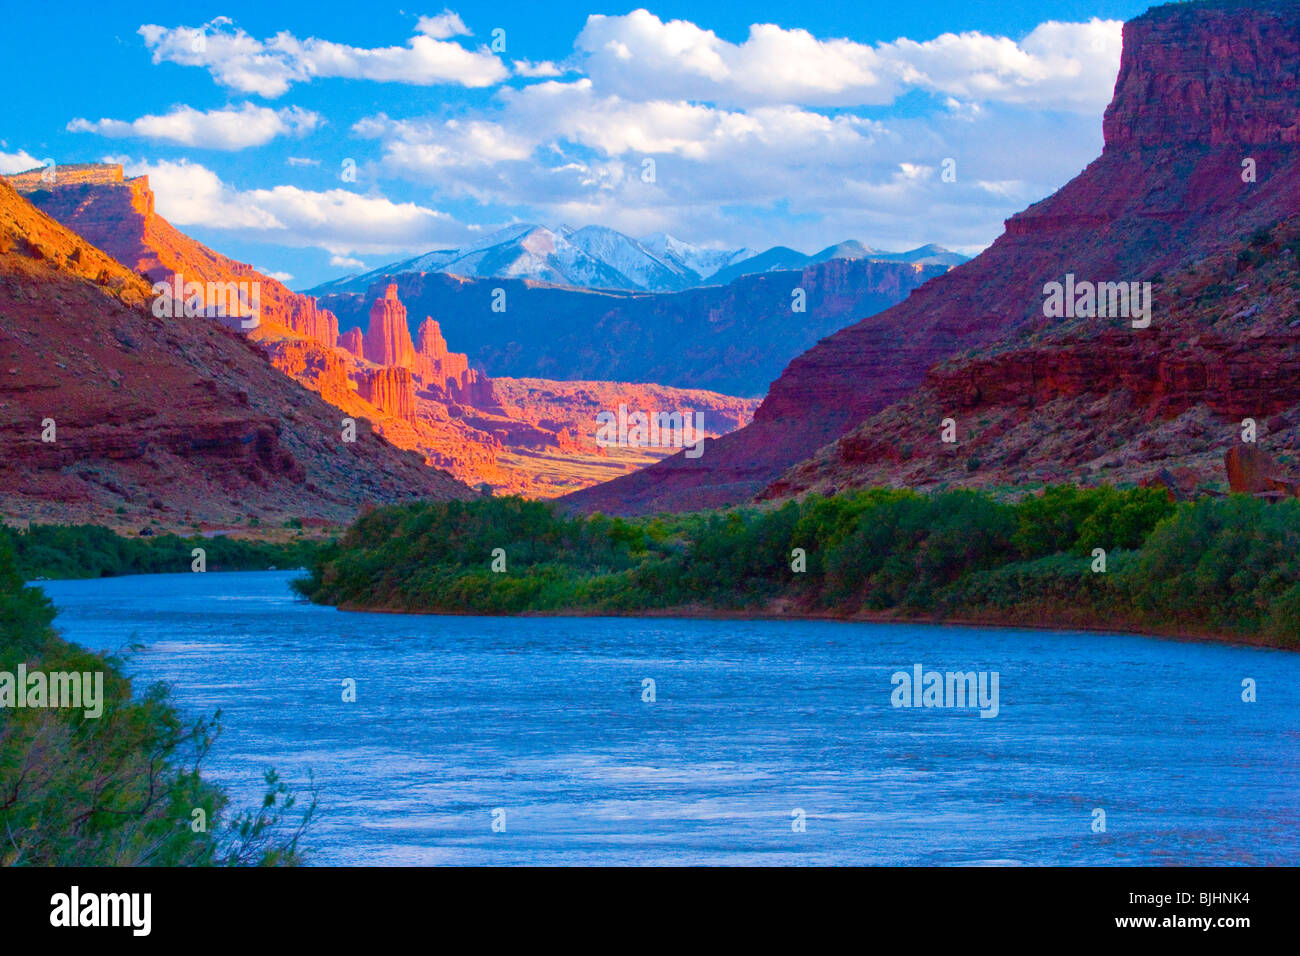 Colorado River, Utah, Fisher Towers and La Sal Mountains beyond, BLM lands and Manti-La Sal National Forest - Stock Image